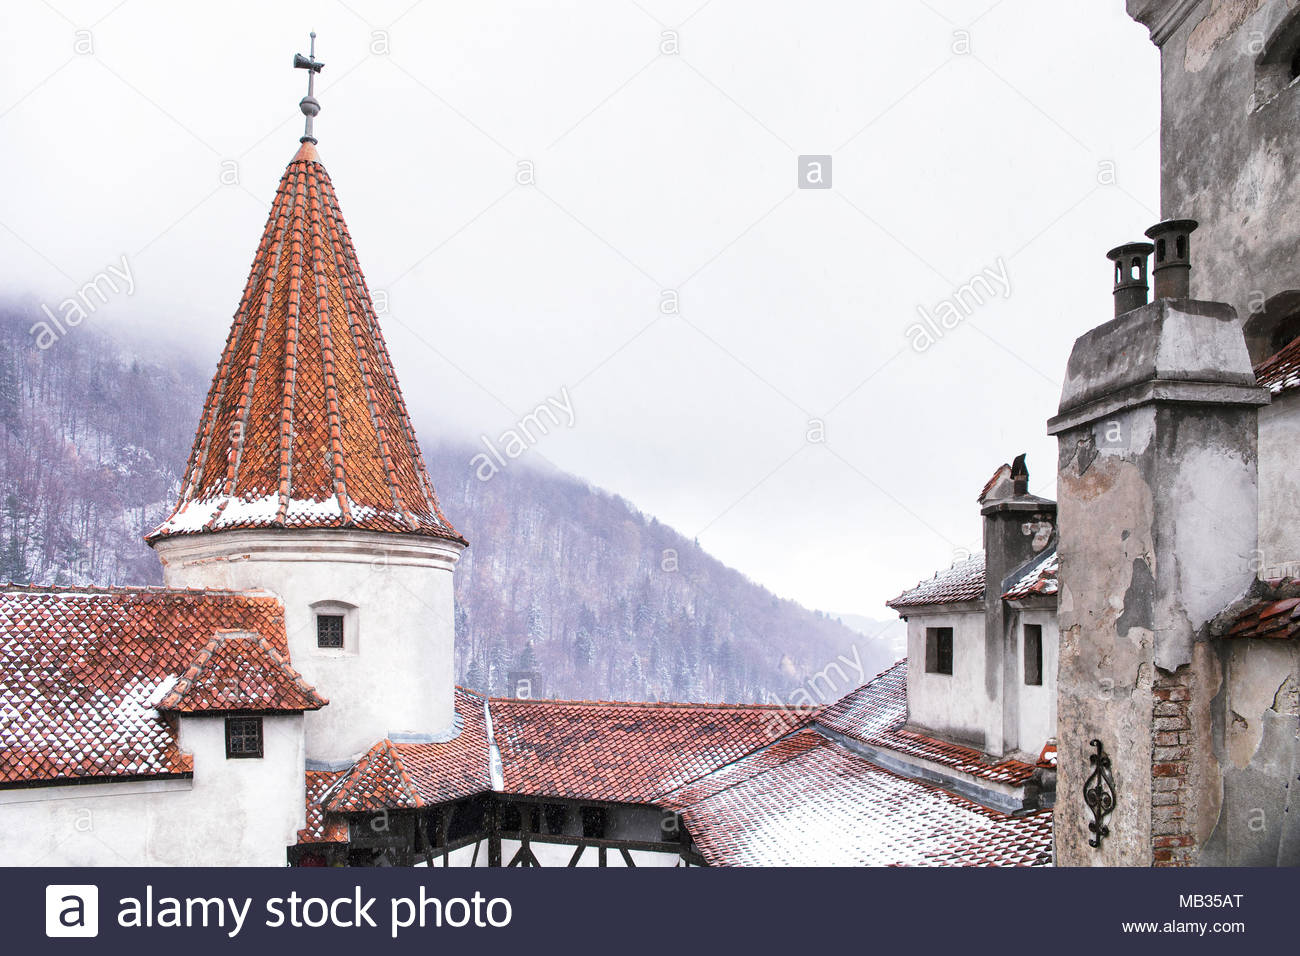 Bran Castle dusted with Winter snow in the valleys of central Romania. - Stock Image